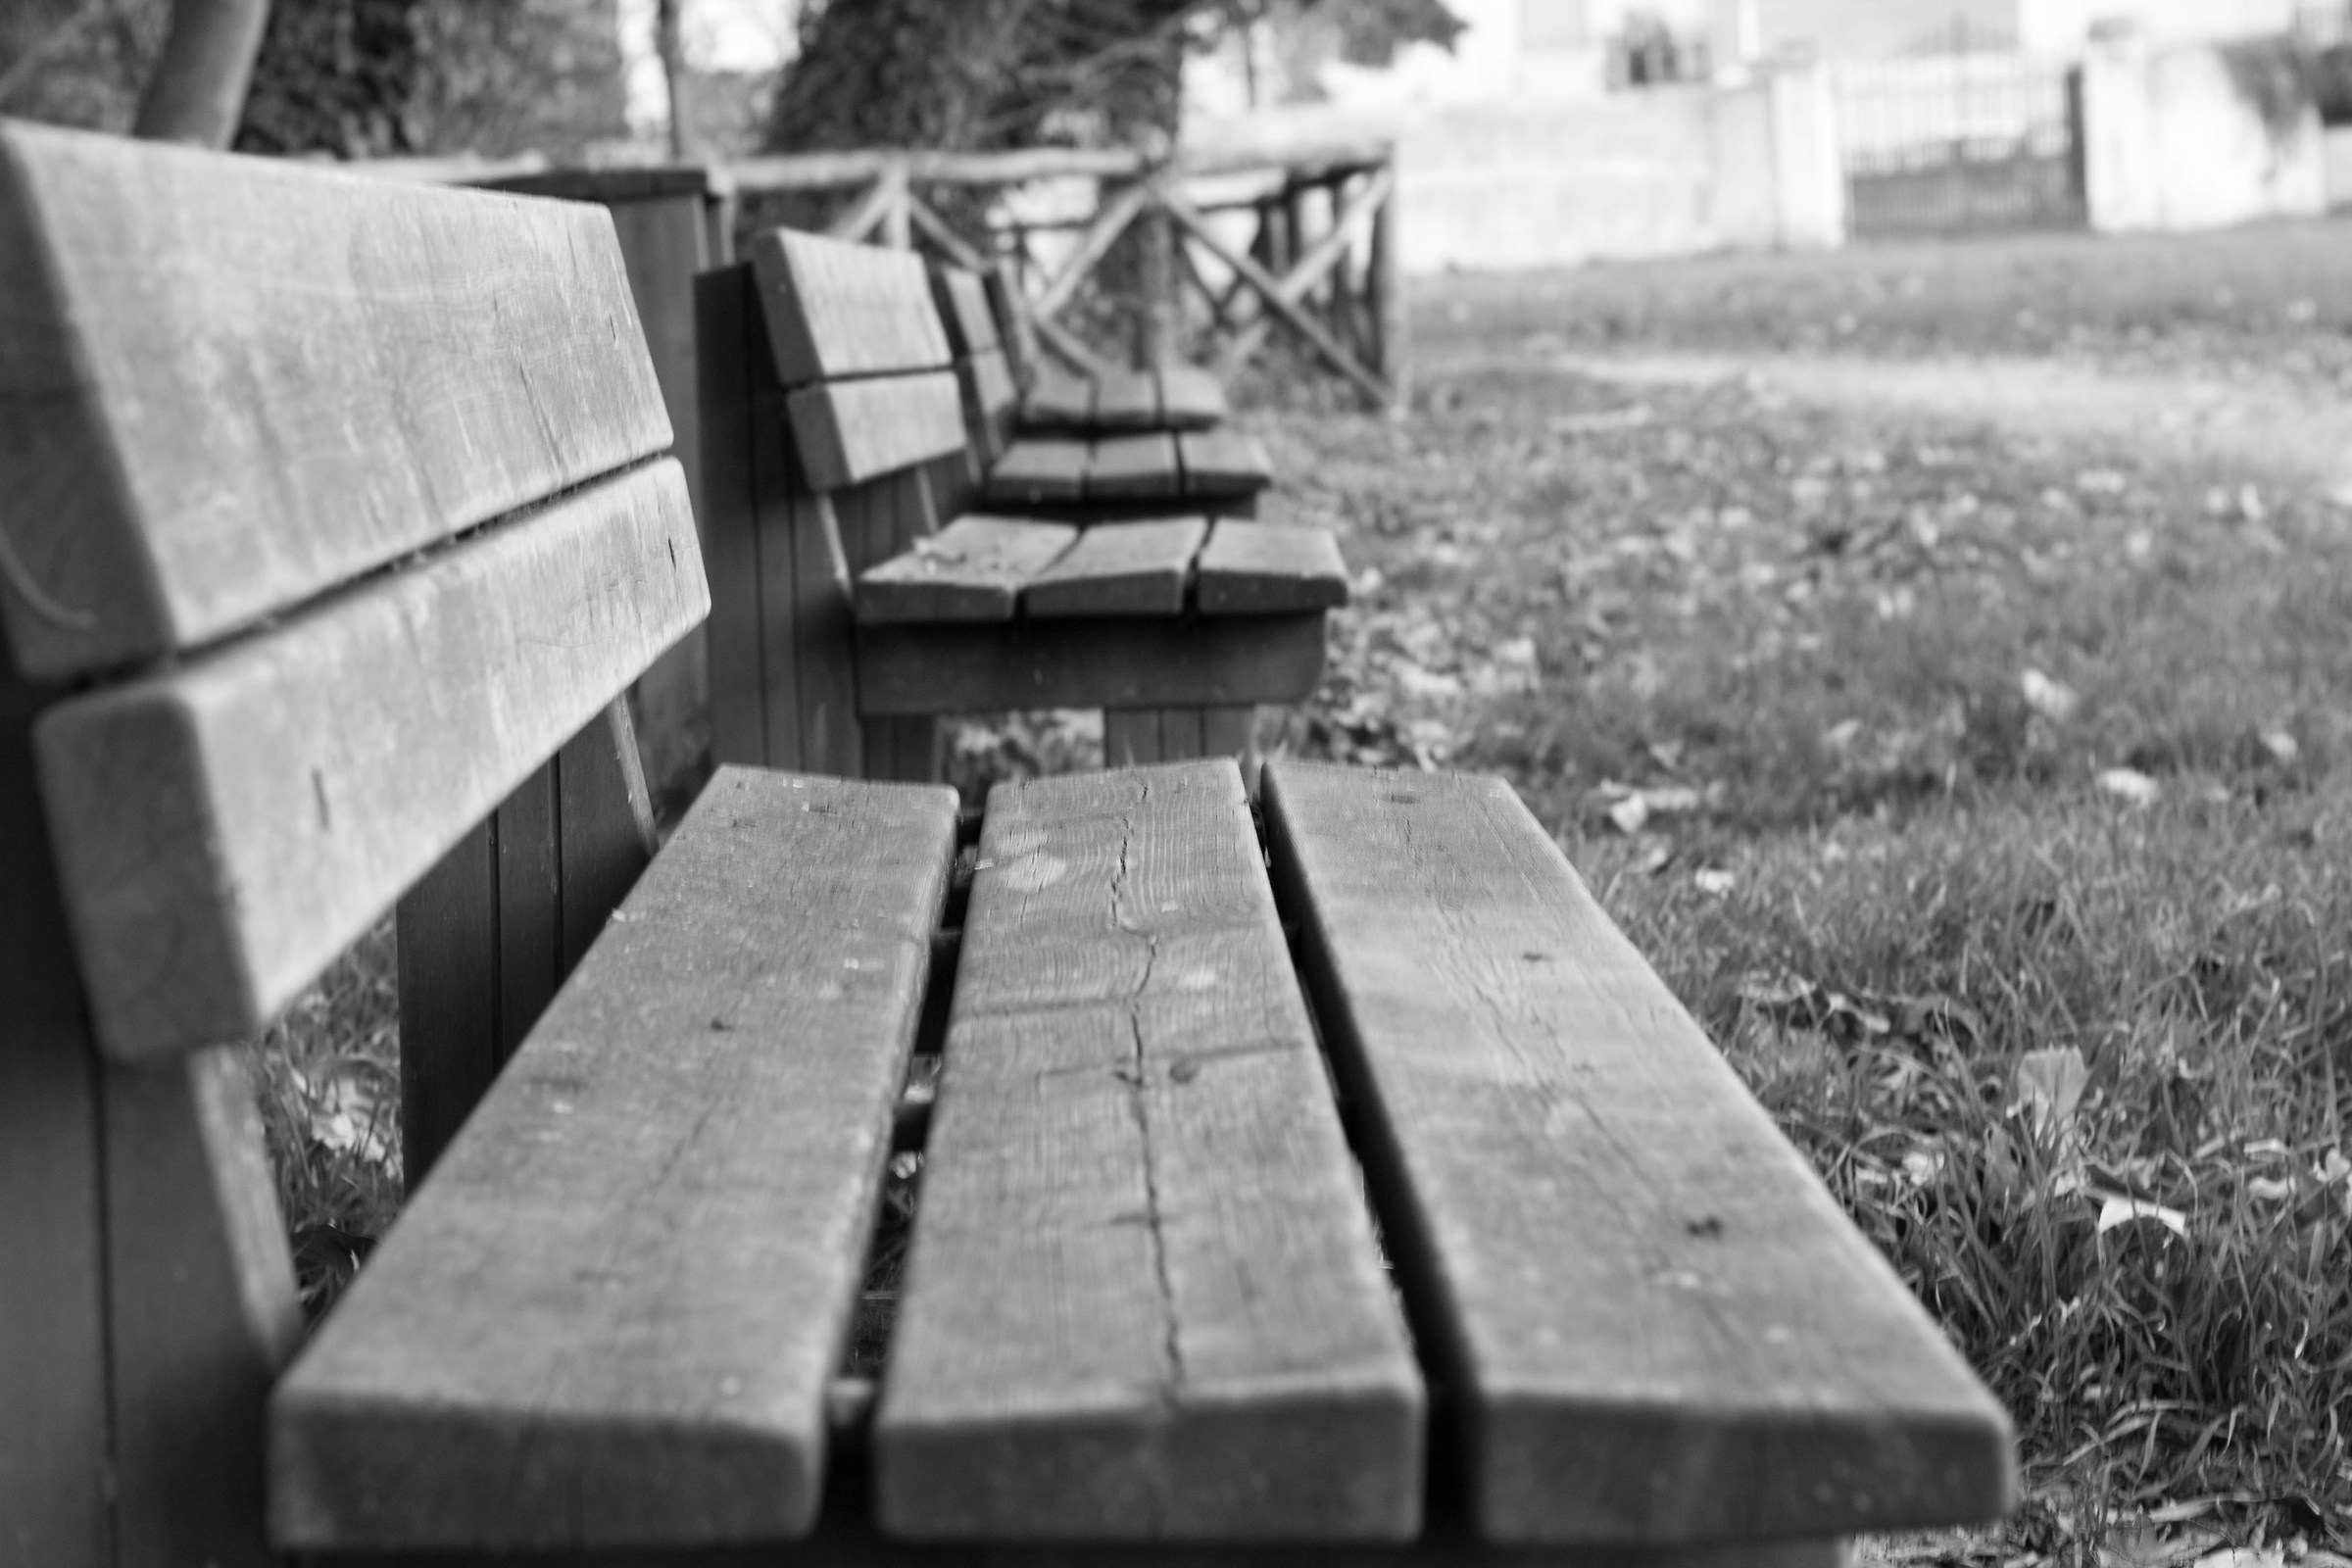 nearby benches...